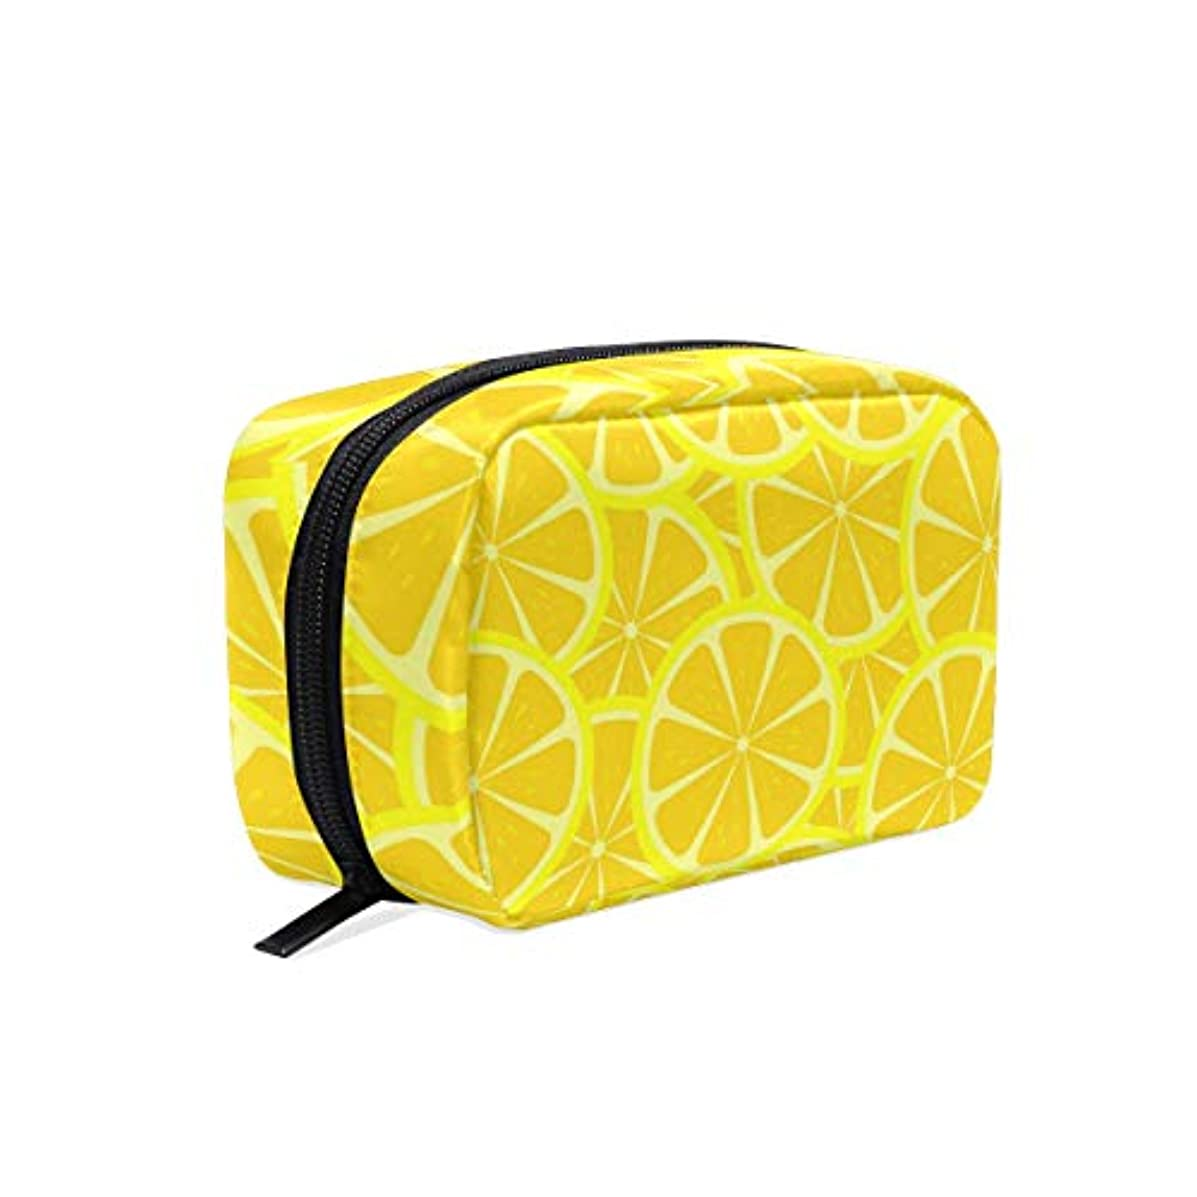 Fantastic Lemon Slice Cosmetic Bag Toiletry Storage Bag Travel Bag for Brushes Jewelry Accessories Collection